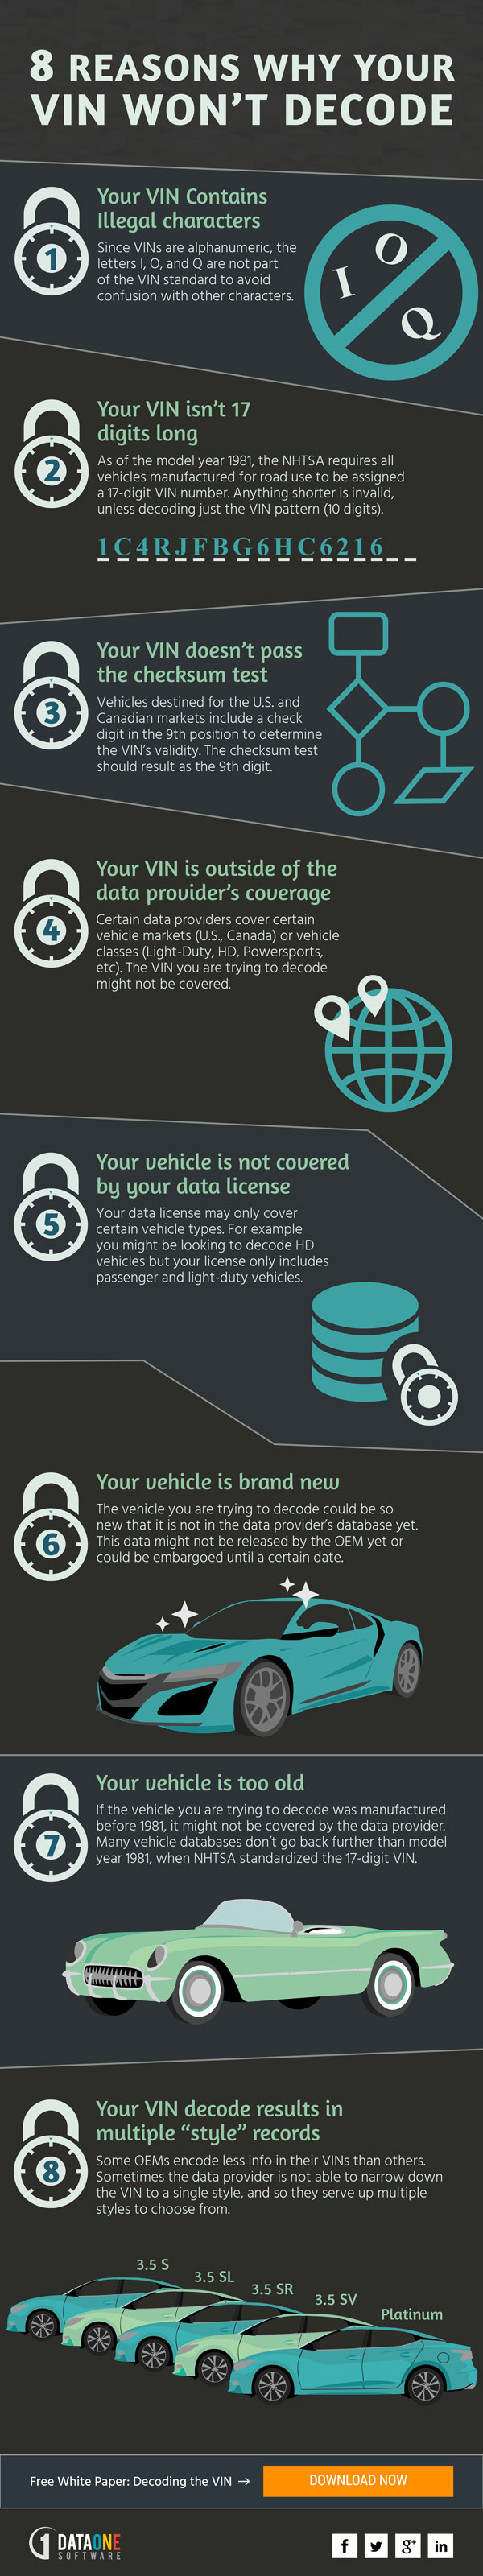 8-Reasons-Why-Your-VIN-Wont-Decode-Infographic.jpg